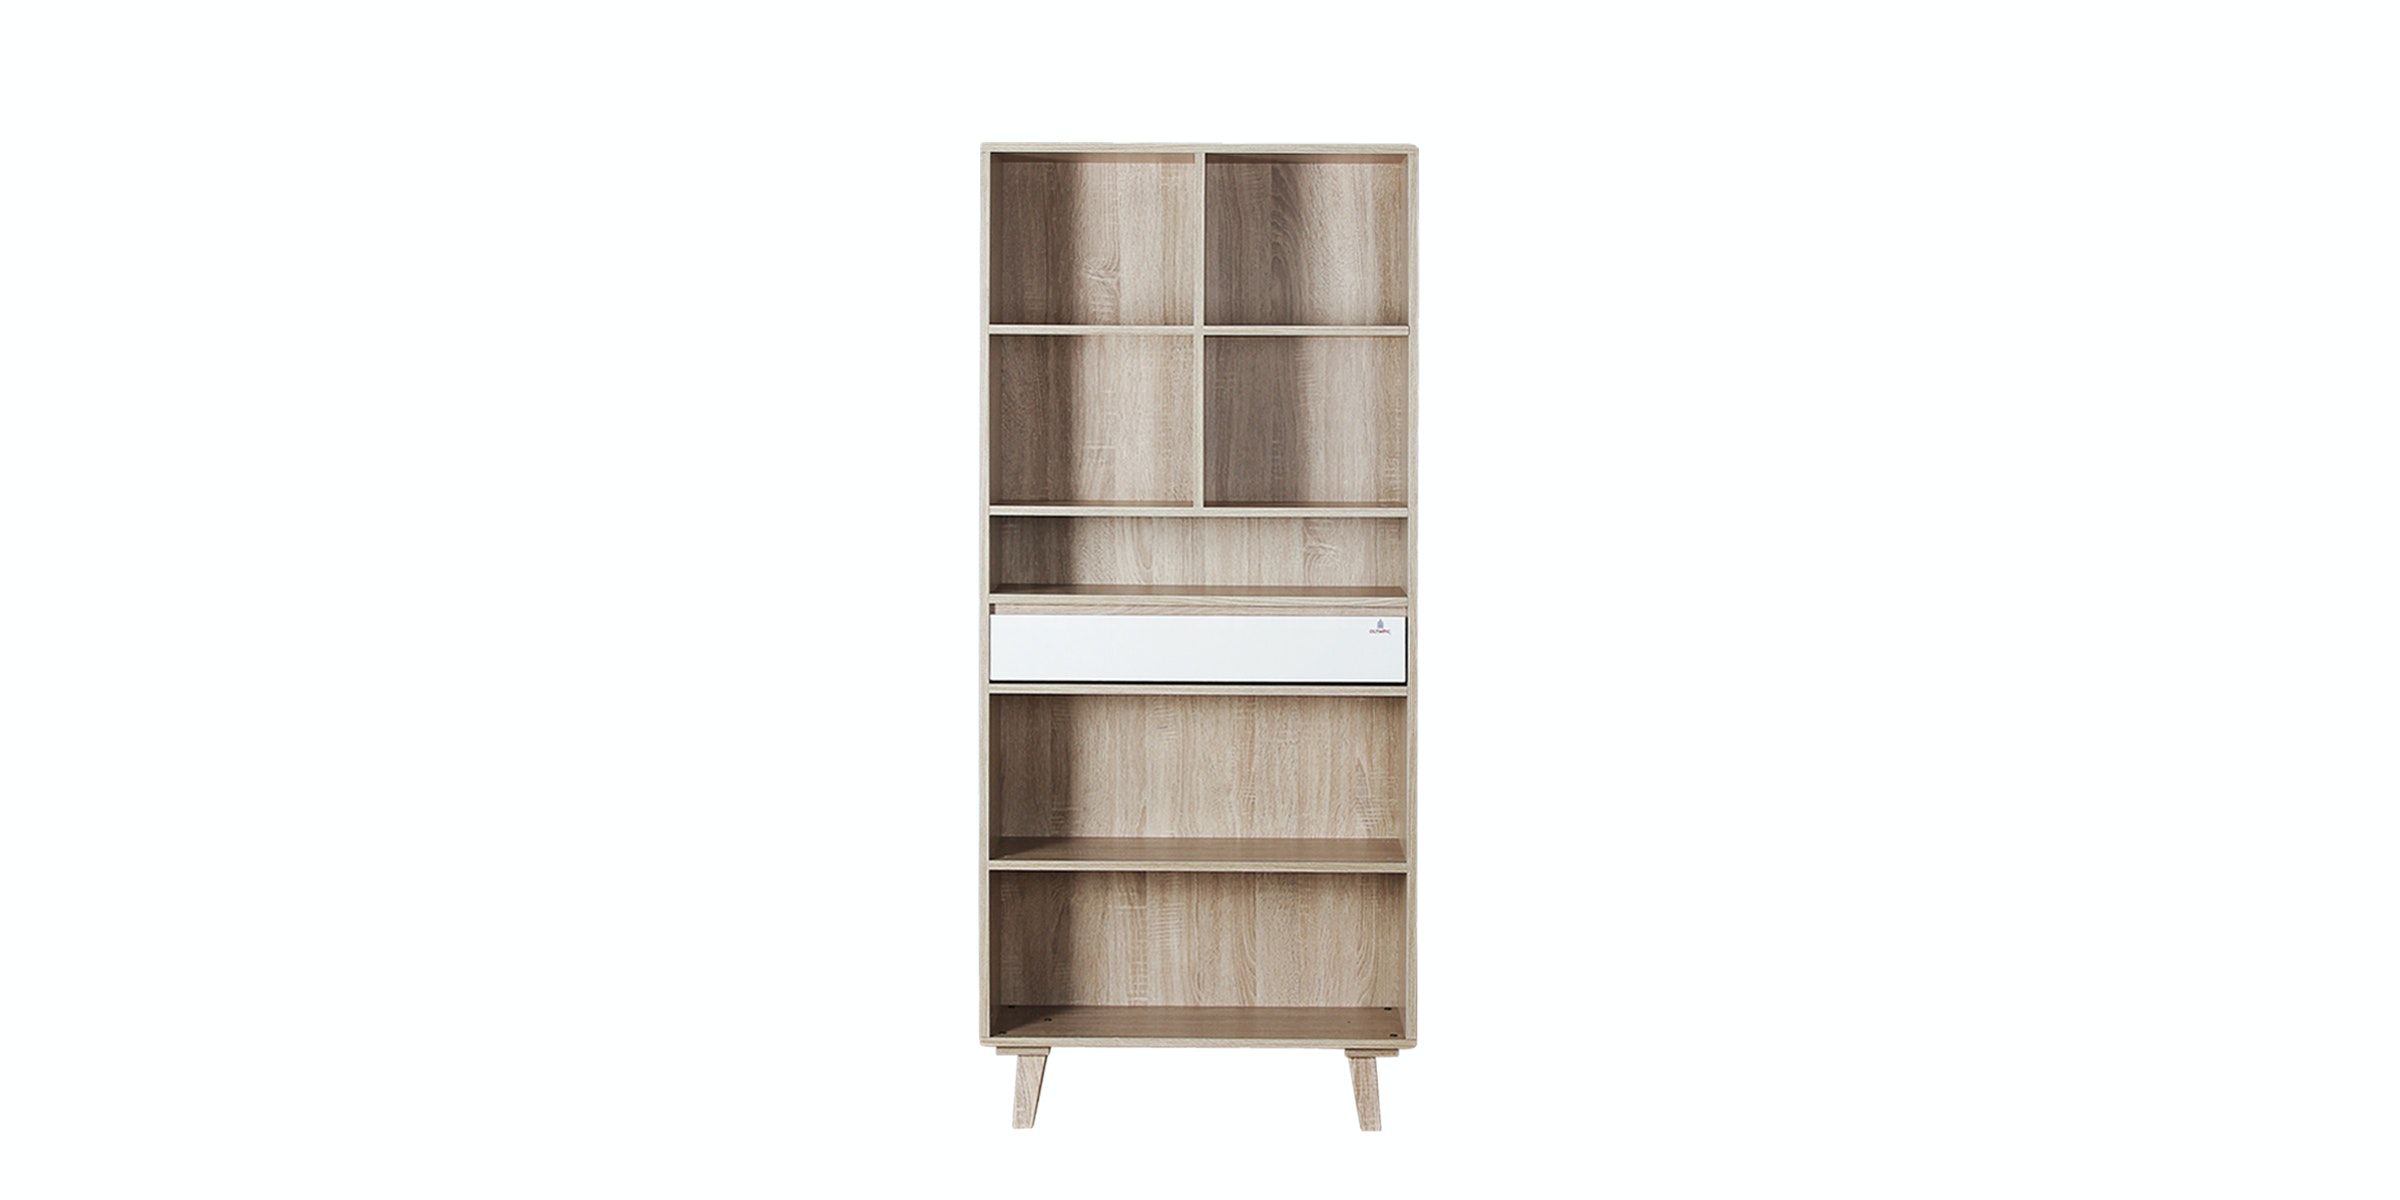 Olympic Curla Series Book Case Big-Rak Buku Besar Scandinavian Style